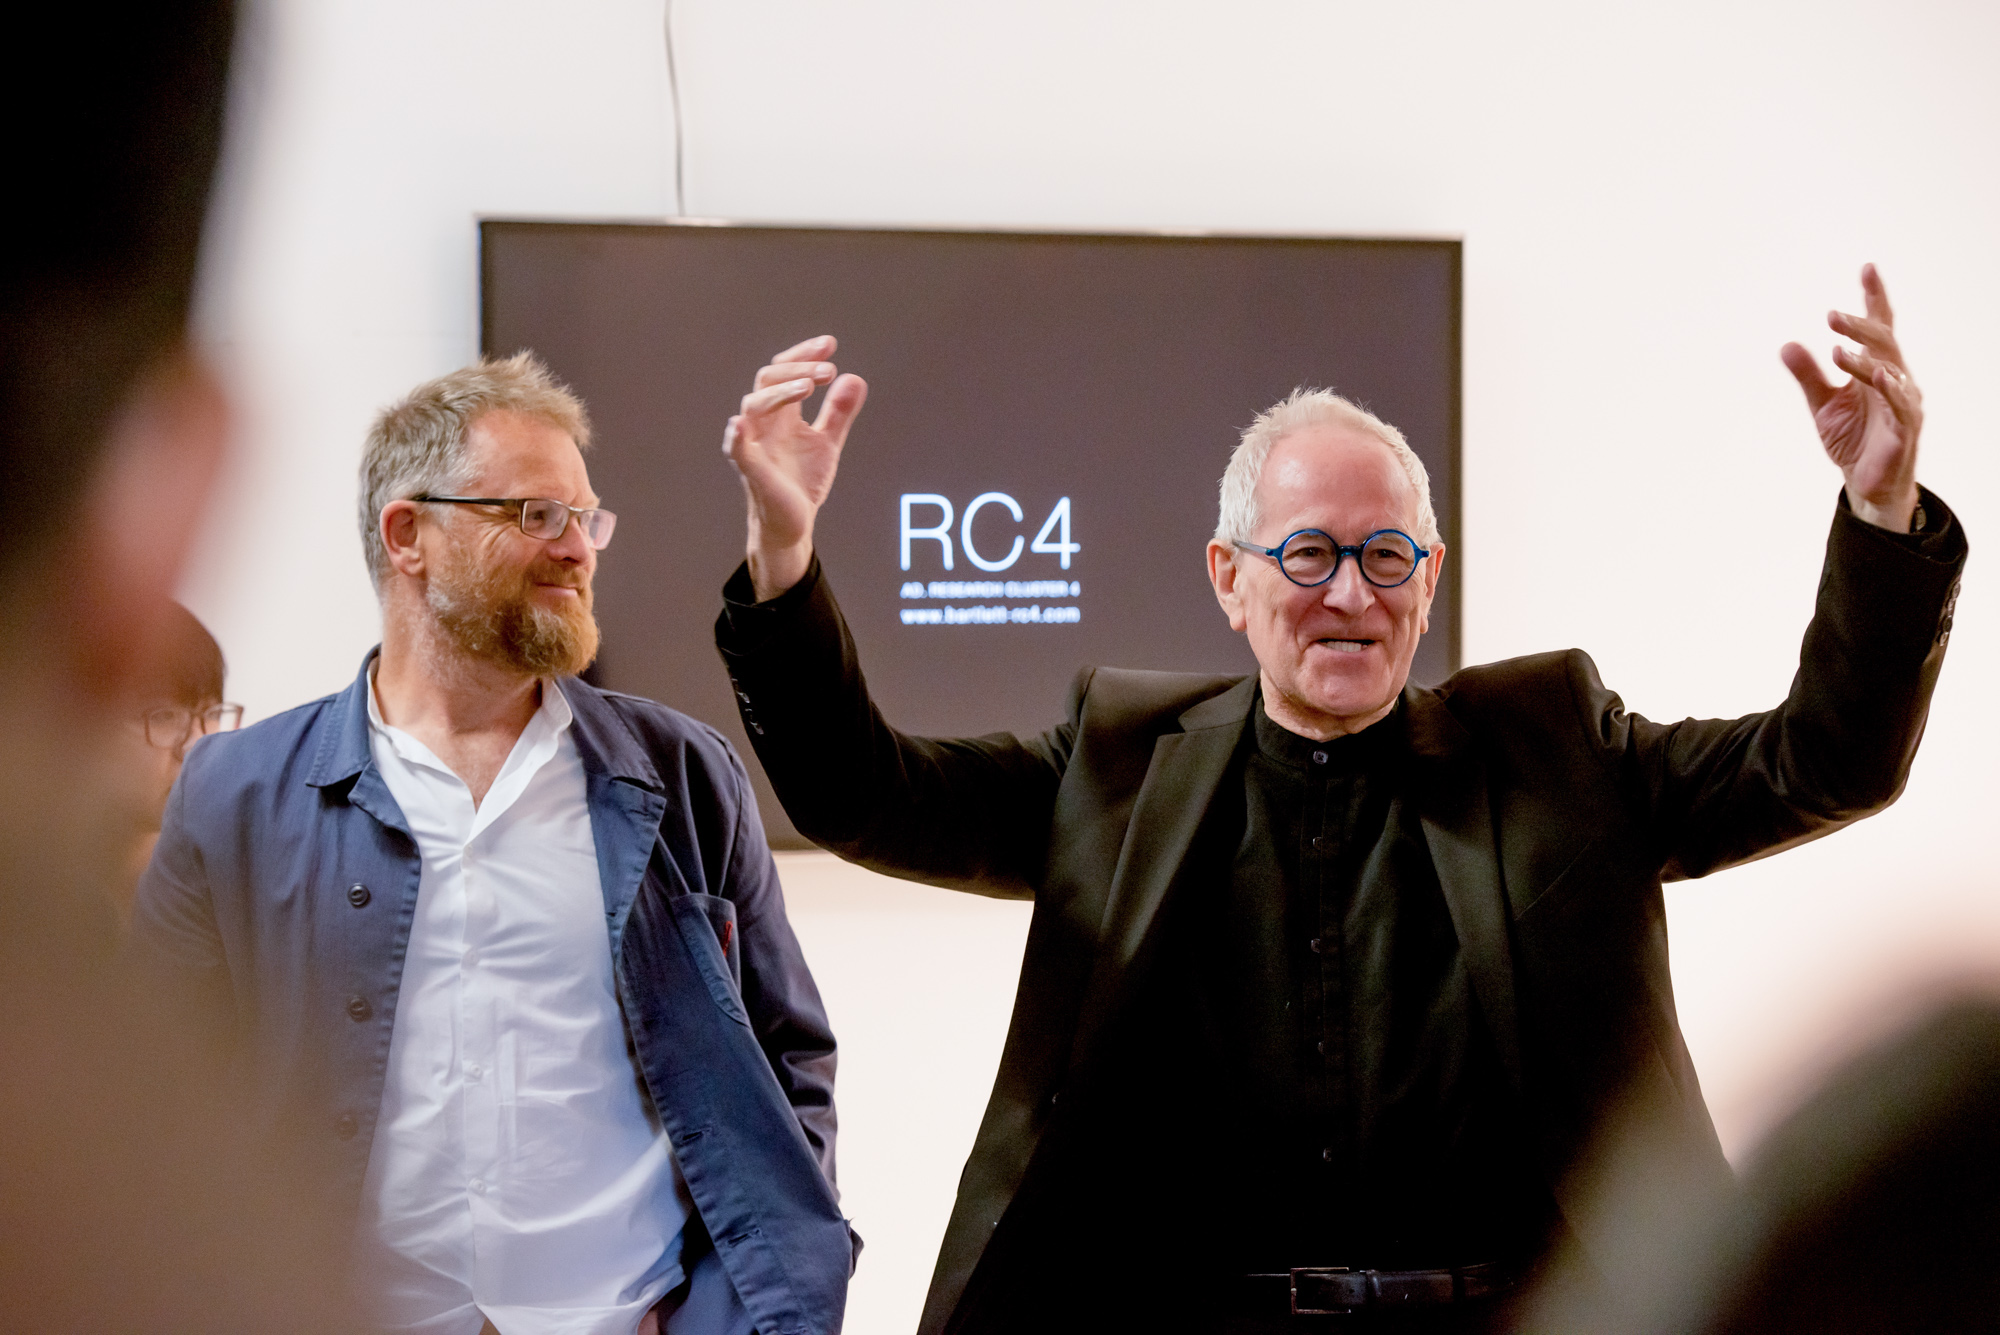 Peter Cook speaking to new students at 2015 B-Pro Exhibition. Bartlett School of Architecture, UCL, 140,Hampstead Road, London. Photography by Richard Stonehouse